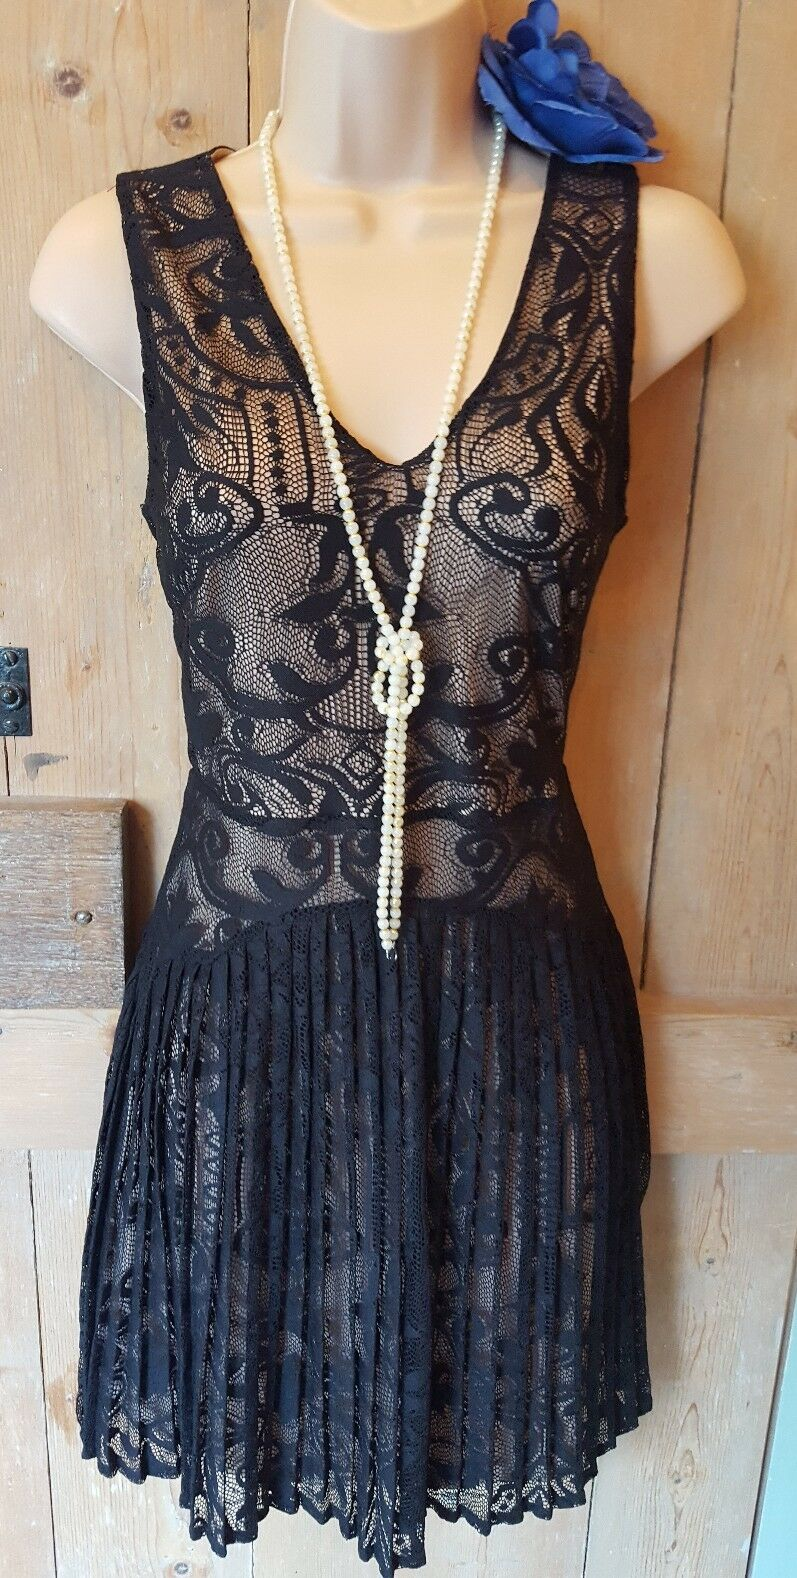 BNWT Vintage 20s style lacey flapper gatsby charleston party Xmas dress 8